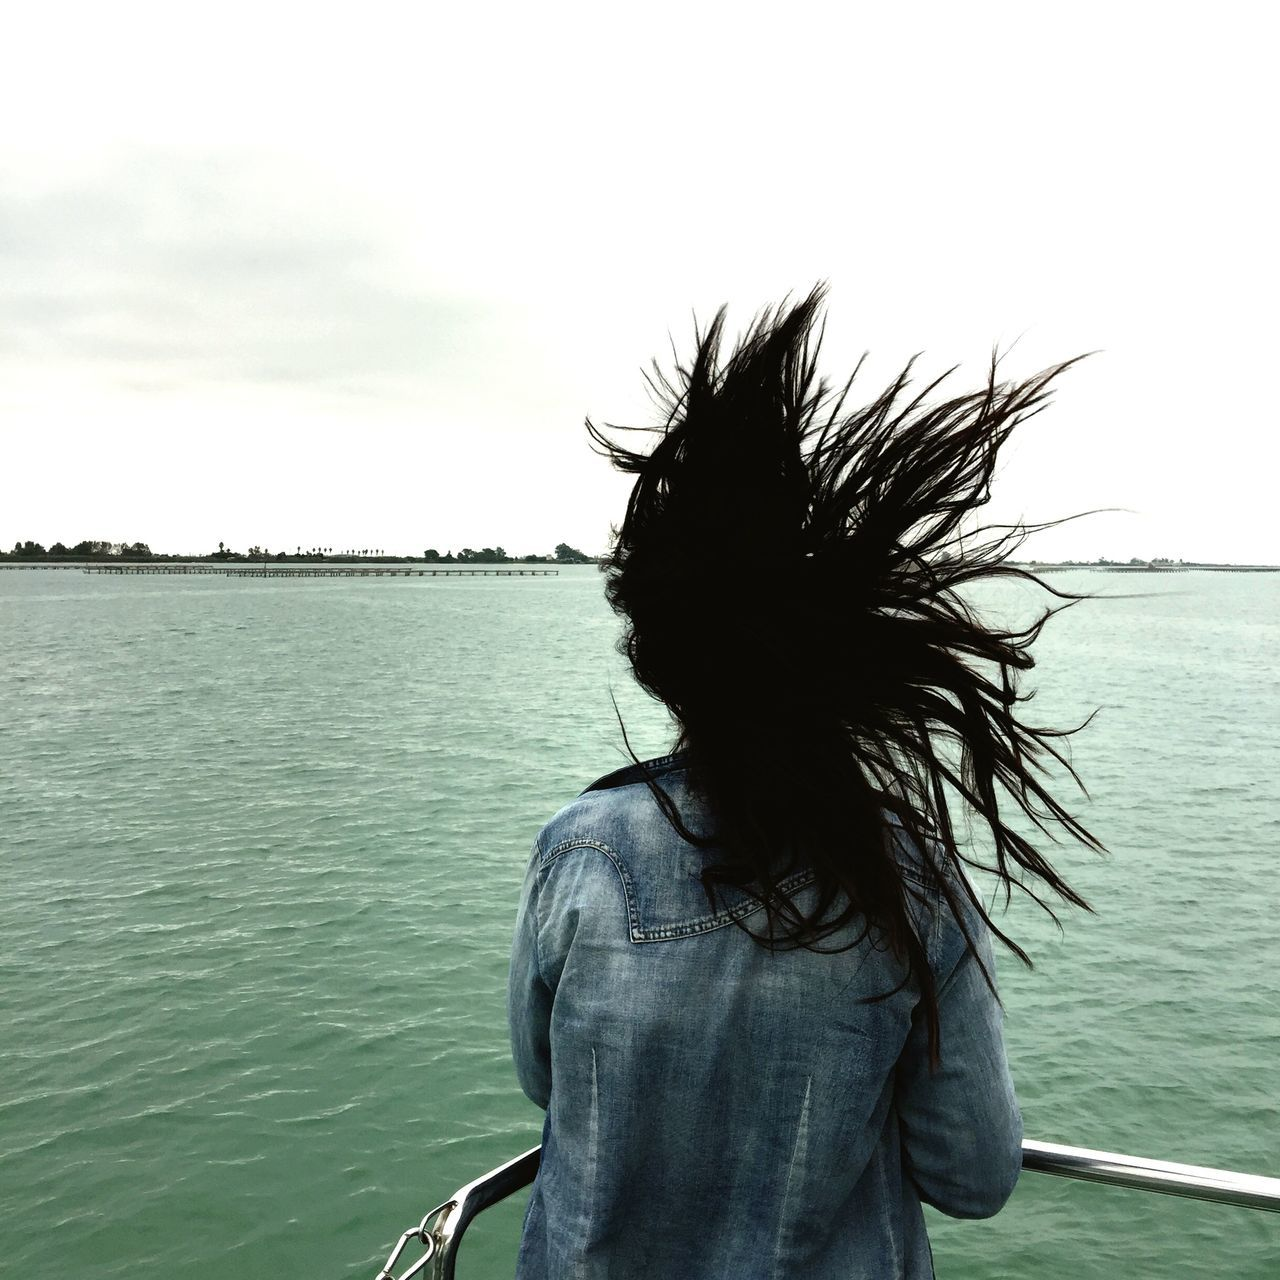 water, real people, rear view, one person, sea, leisure activity, sky, lifestyles, day, outdoors, nature, women, beauty in nature, people